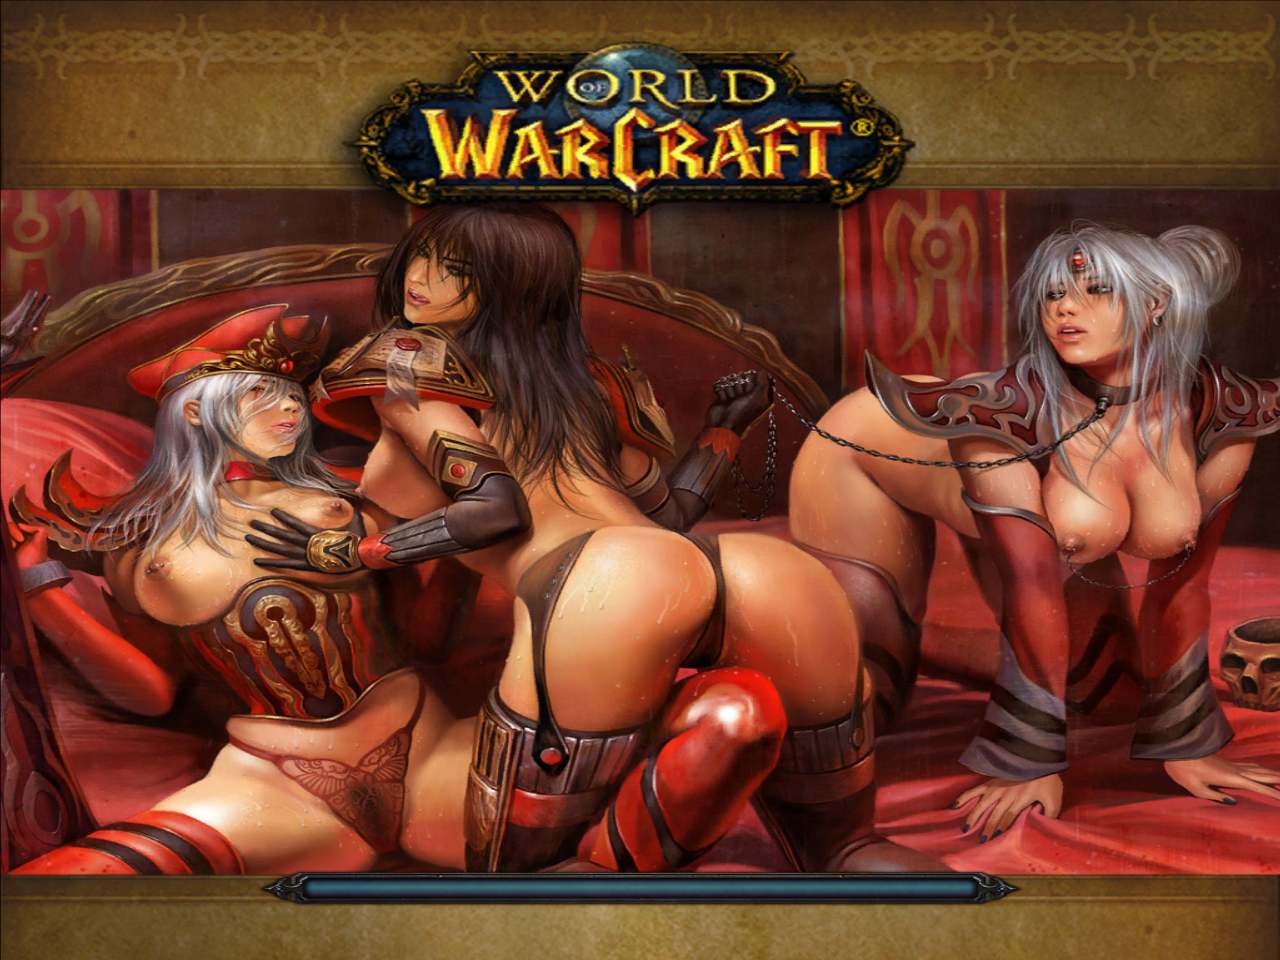 New world of warcraft porn videos sex galleries